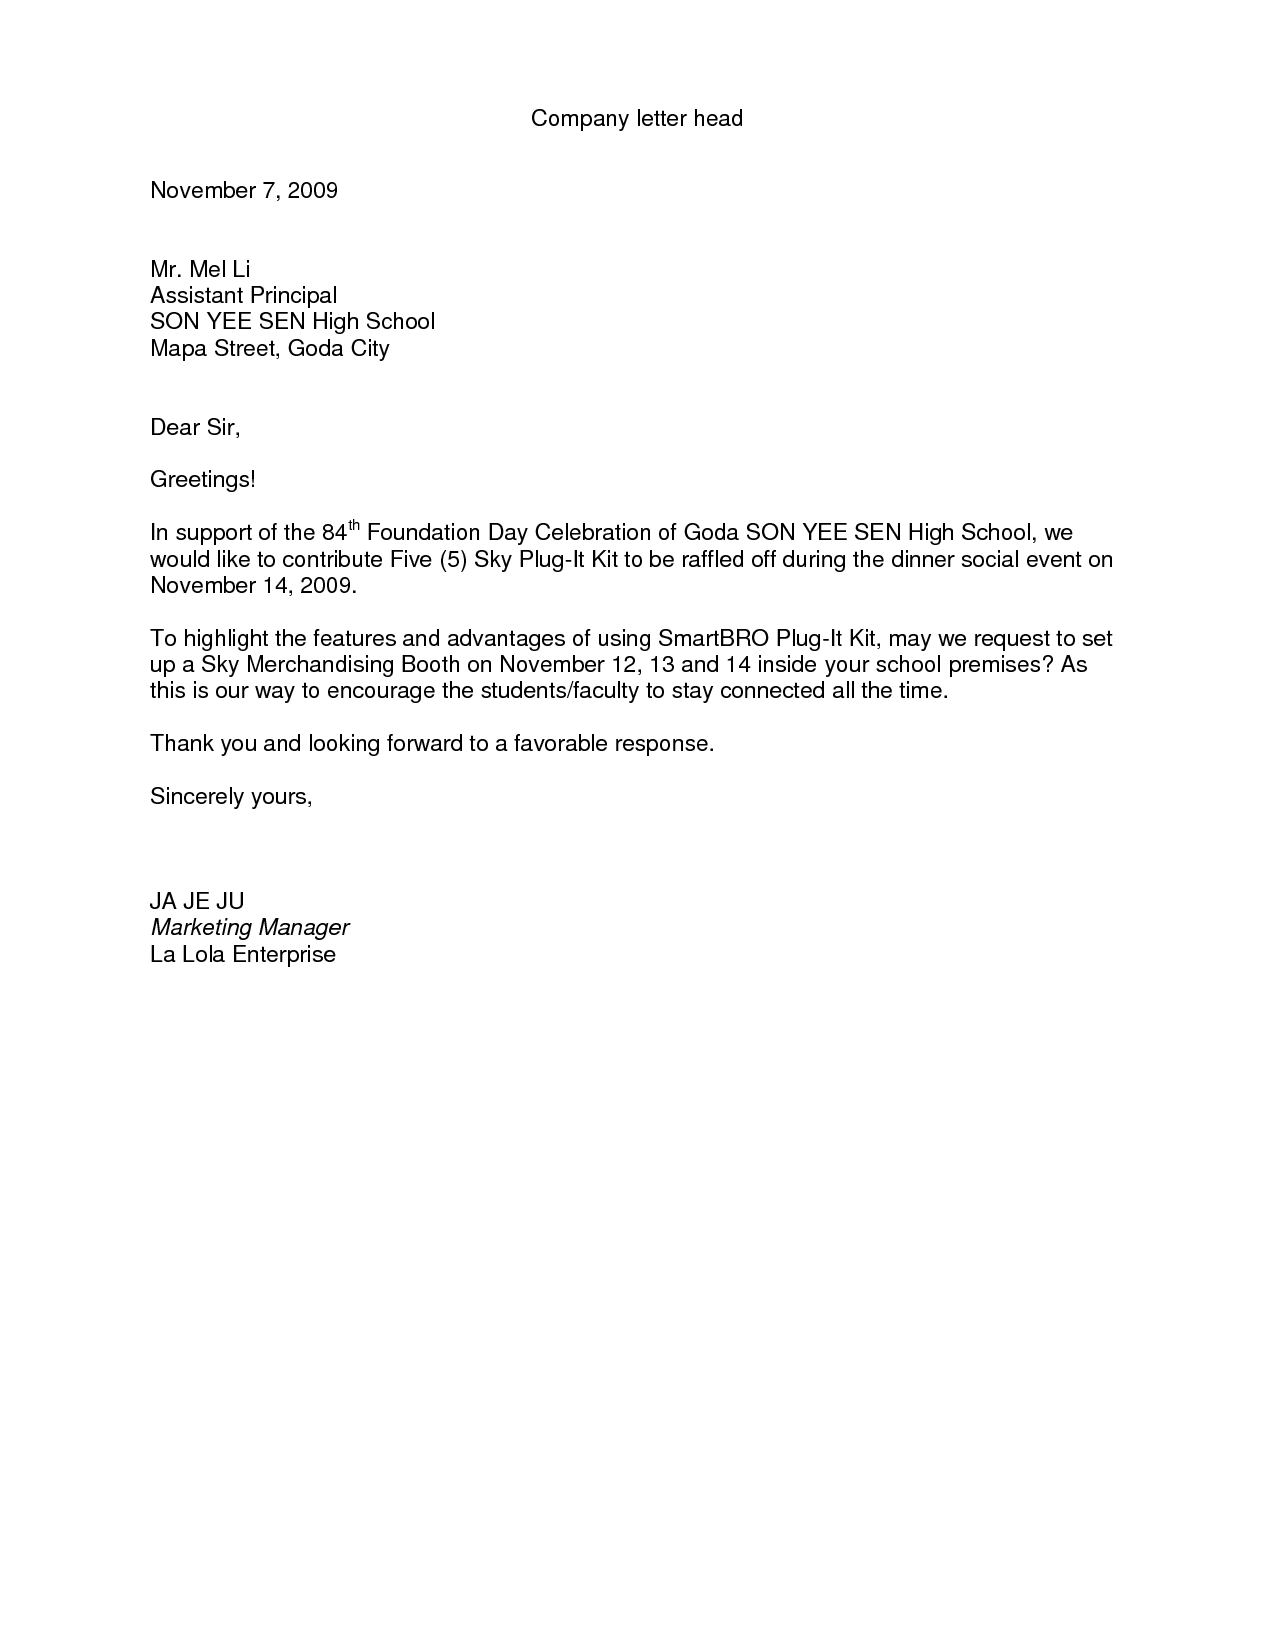 Proposal Request Letter - Sample Letter Request for Proposal